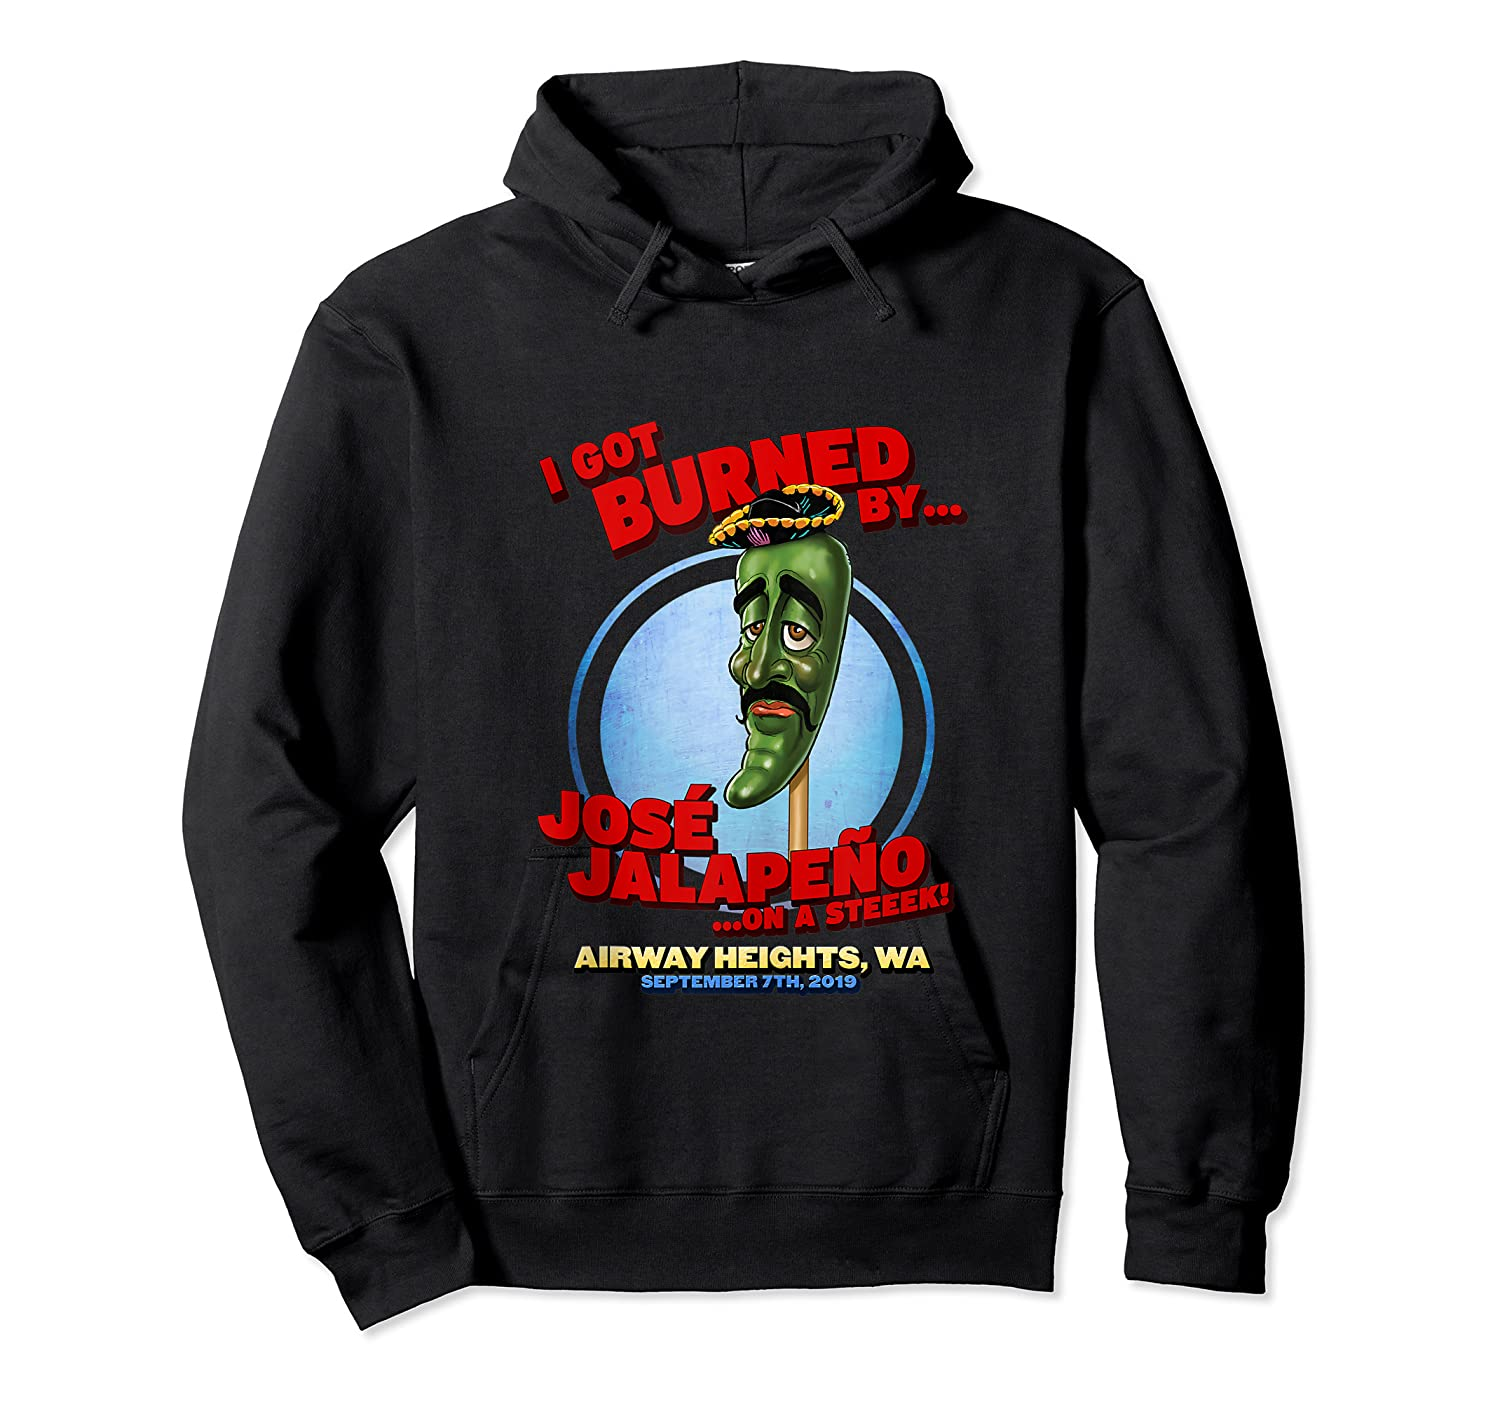 Jose Jalapeno On A Stick Airway Heights Wa Tank Top Shirts Unisex Pullover Hoodie